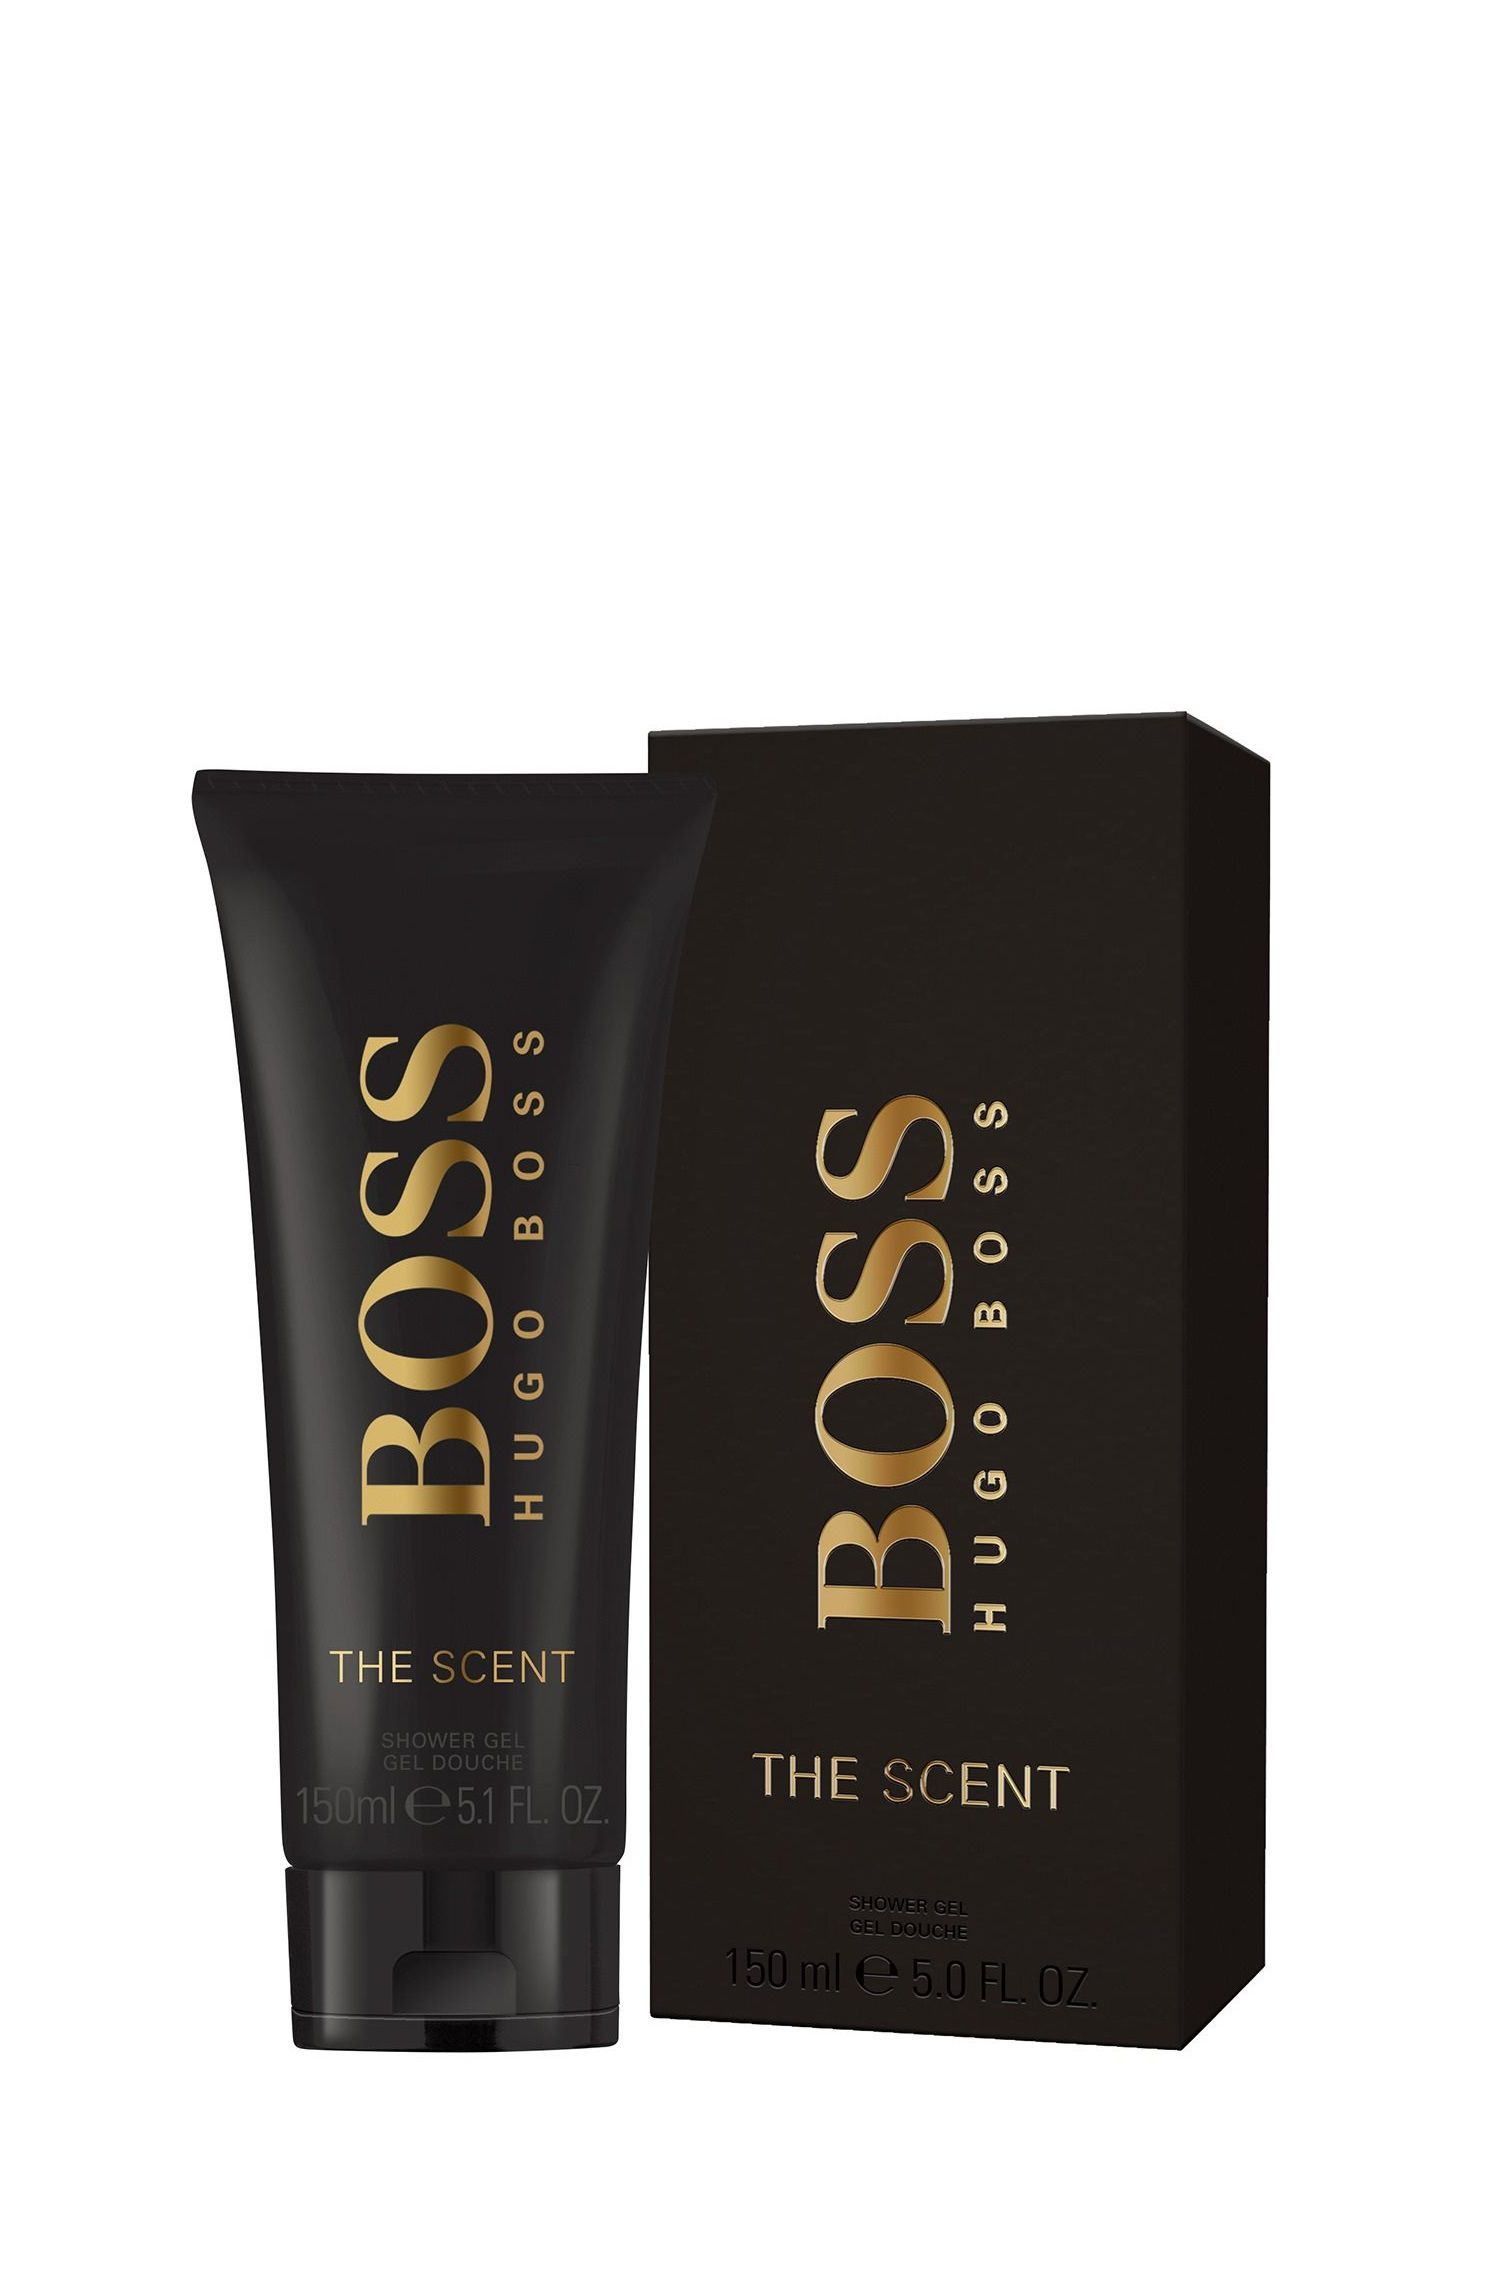 Gel doccia BOSS The Scent da 150 ml